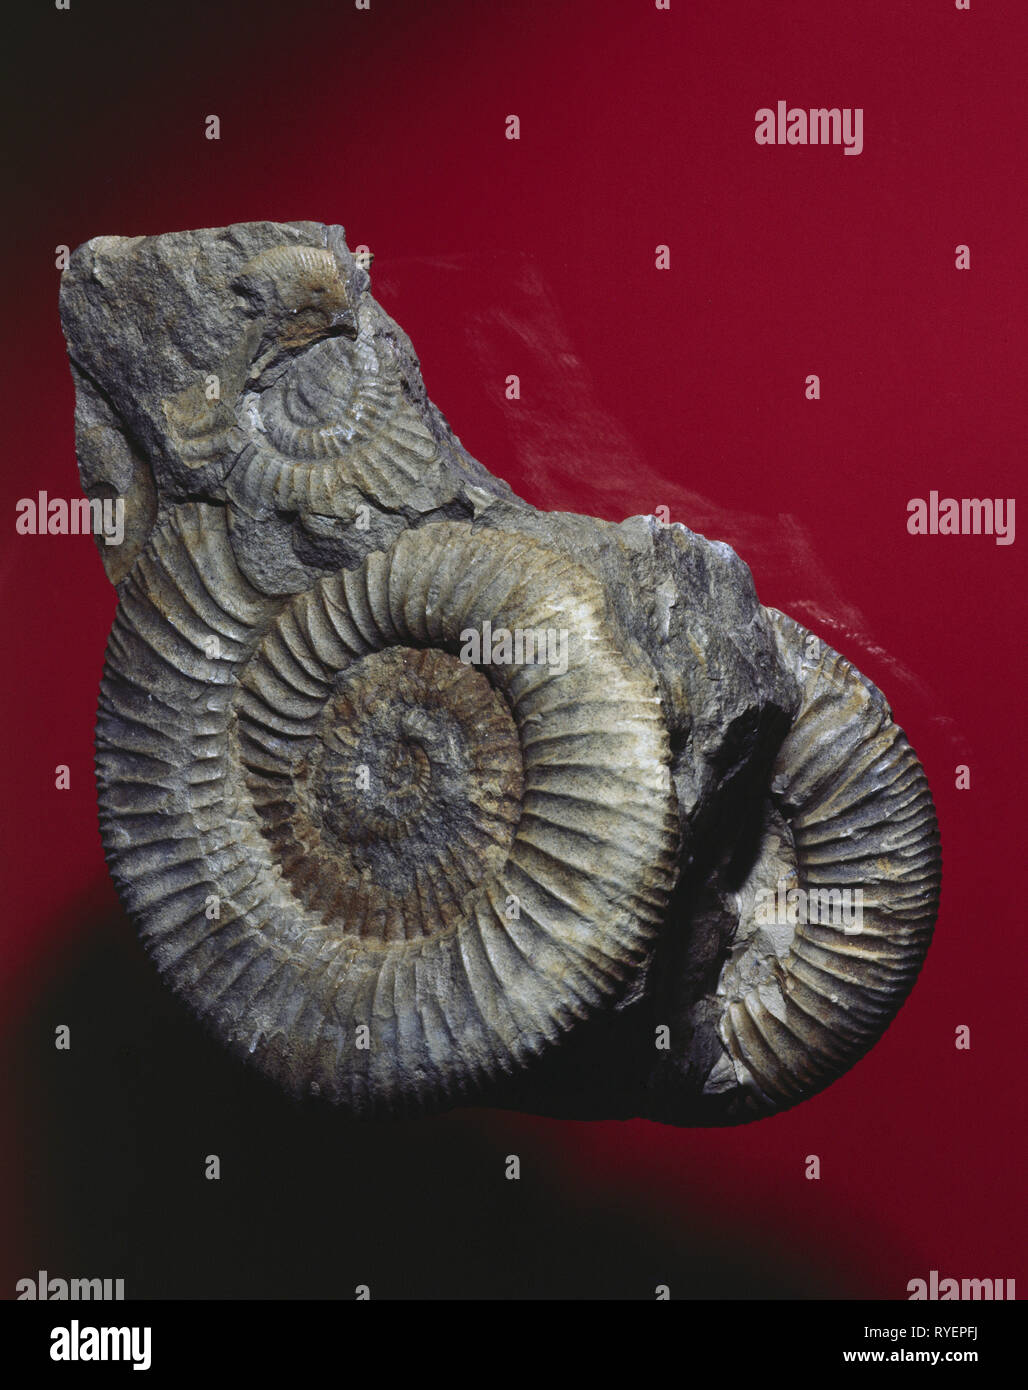 prehistory, fossil, fossil, zoology, petrified ammonite, finding place: Druegendorf / Franconia, Additional-Rights-Clearance-Info-Not-Available - Stock Image